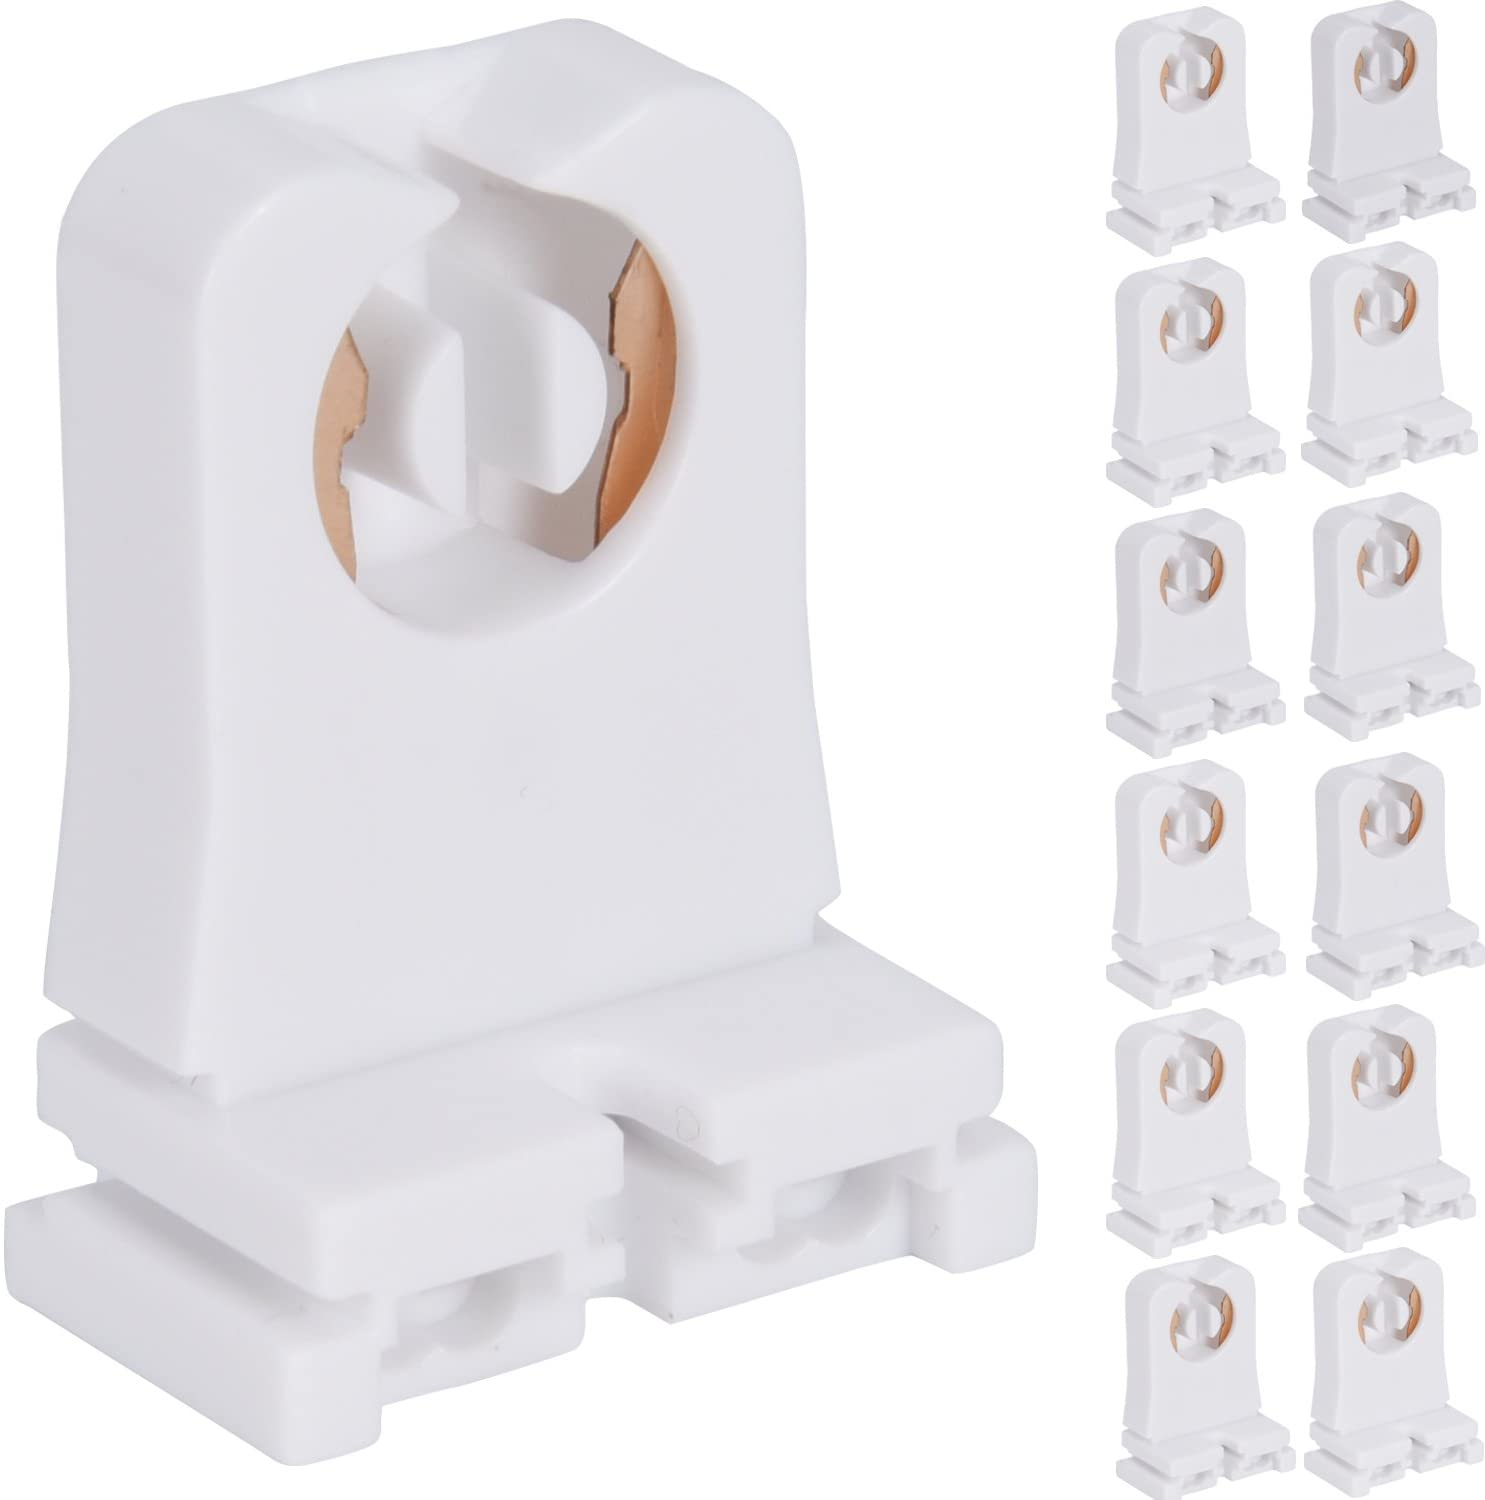 Non-shunted Turn Type T8 Lamp Holder JACKYLED 12-Pack UL Socket Tombstone for LED Fluorescent Tube Replacements Medium Bi-pin Socket for Programmed Start Ballasts